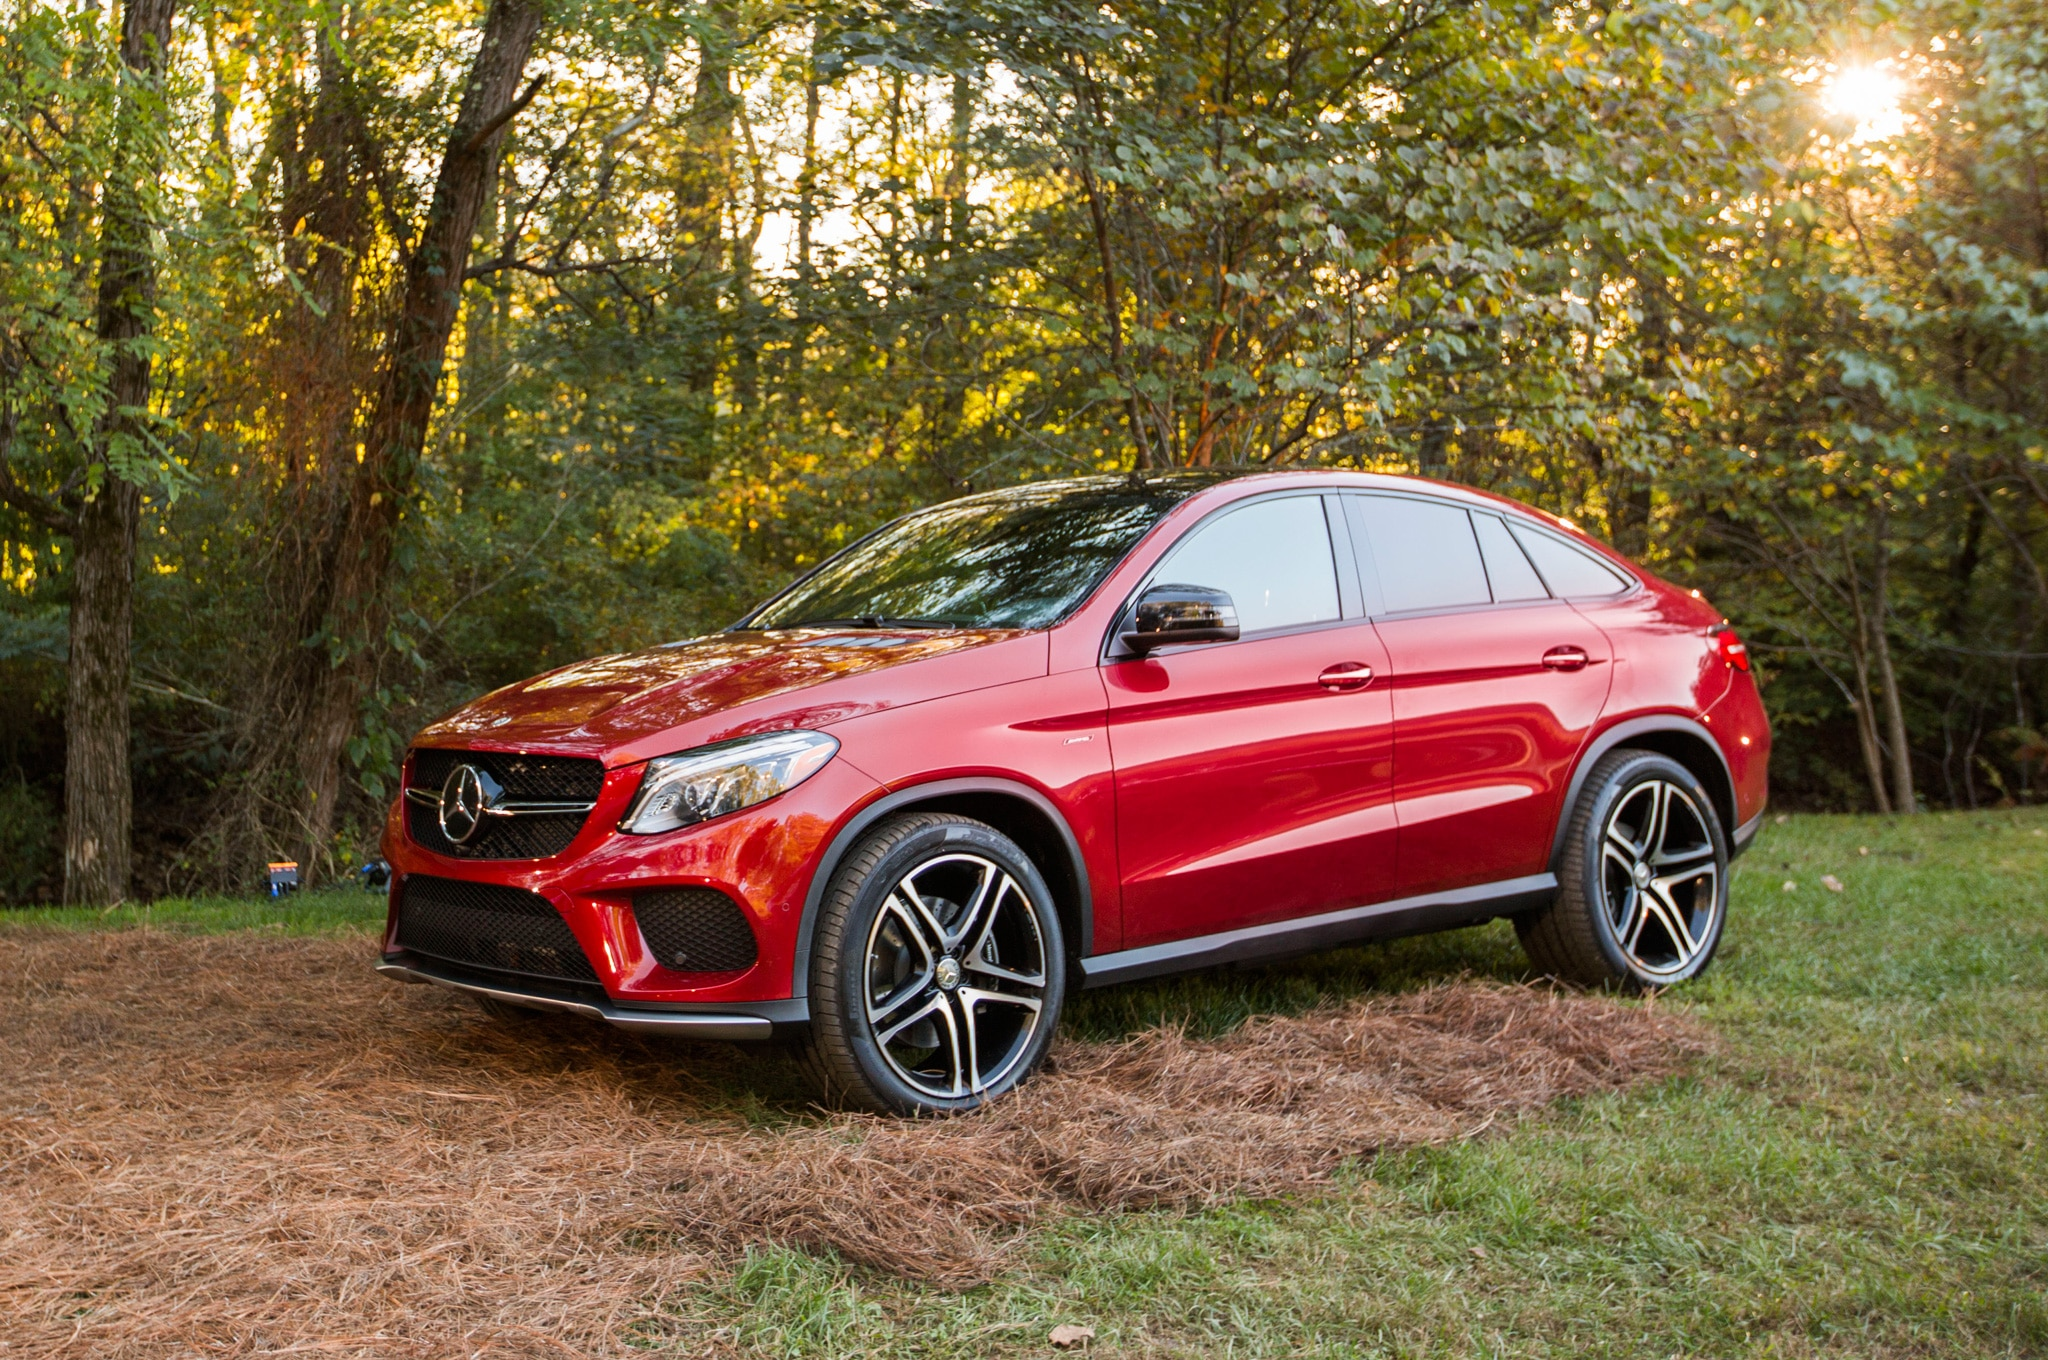 2016 mercedes benz gle450 amg 4matic coupe review for Mercedes benz 4matic review